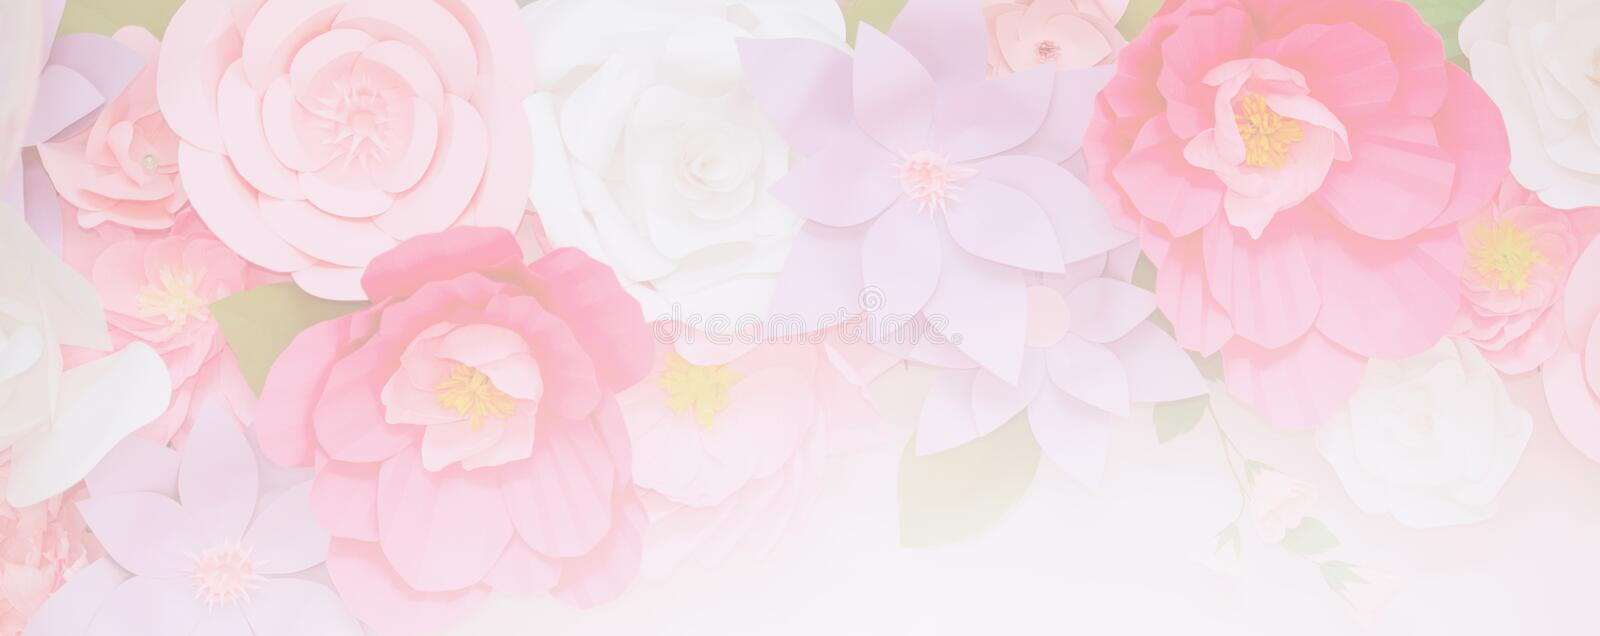 Light pink flowers in soft color royalty free stock images